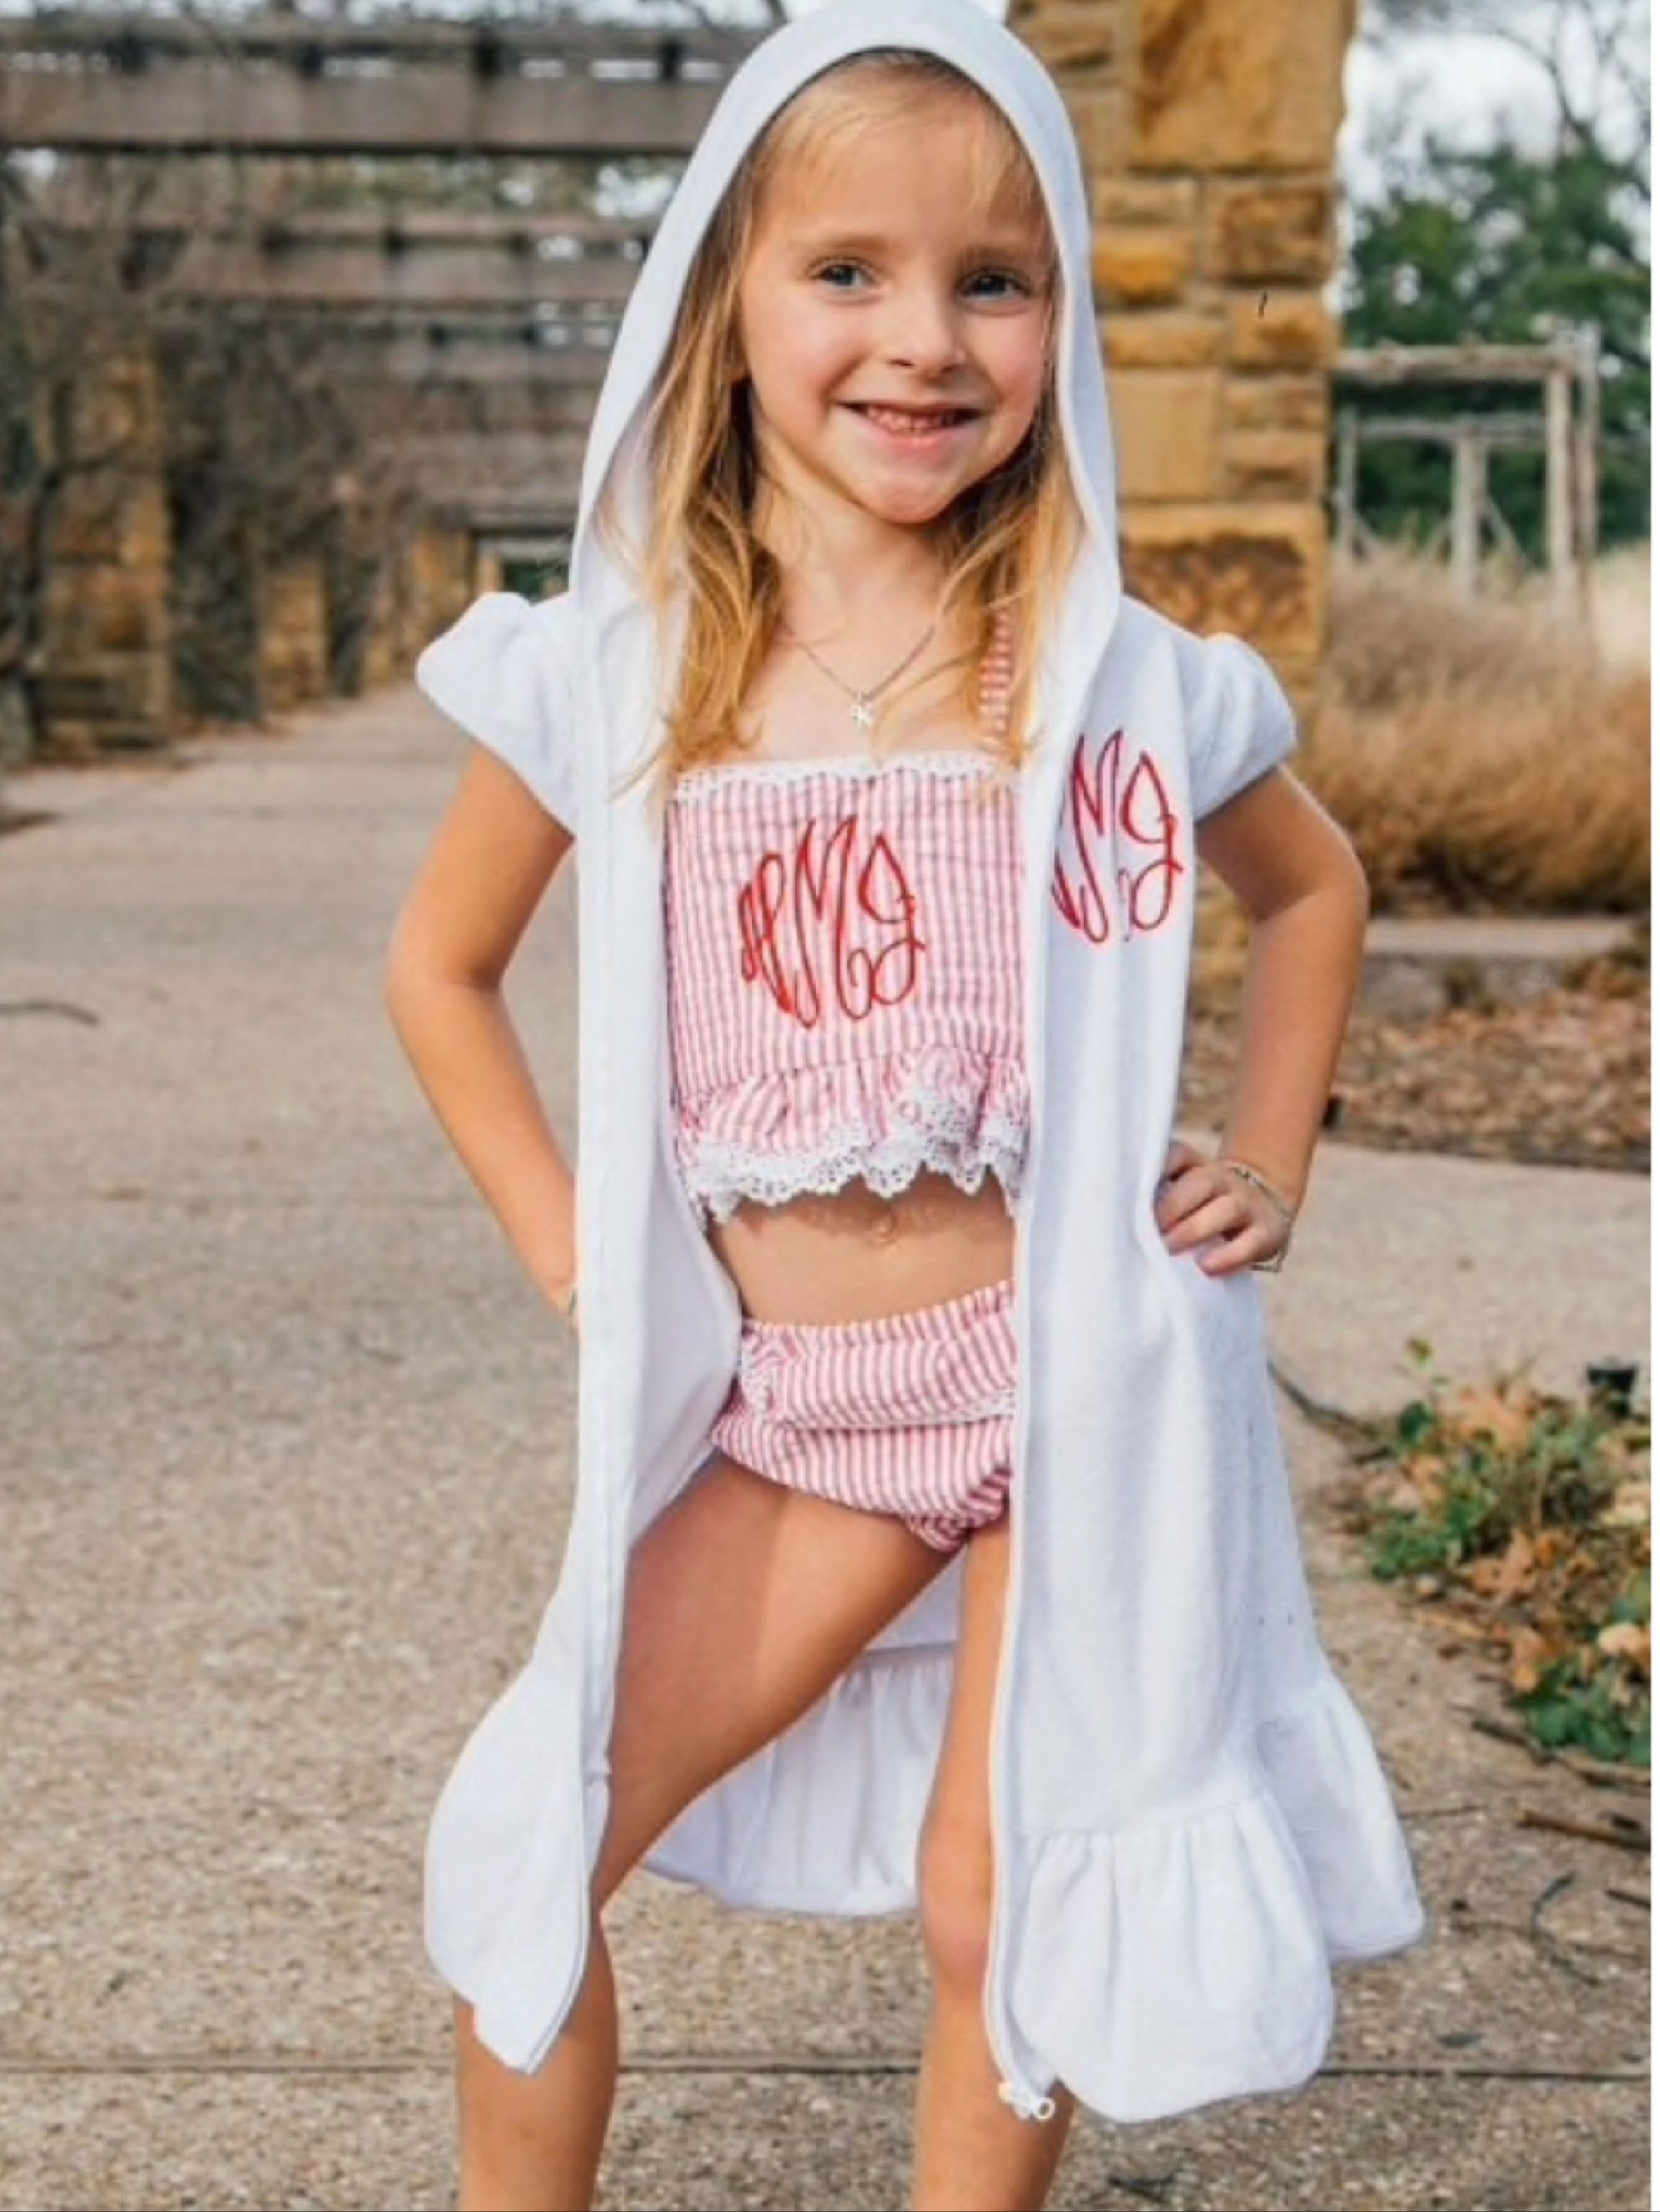 Dance Costume Cover Up- Personalized Cover Up Swim Cover Up Mermaid Cover Up Personalized Toddler or Girl Bathing Suit Cover up